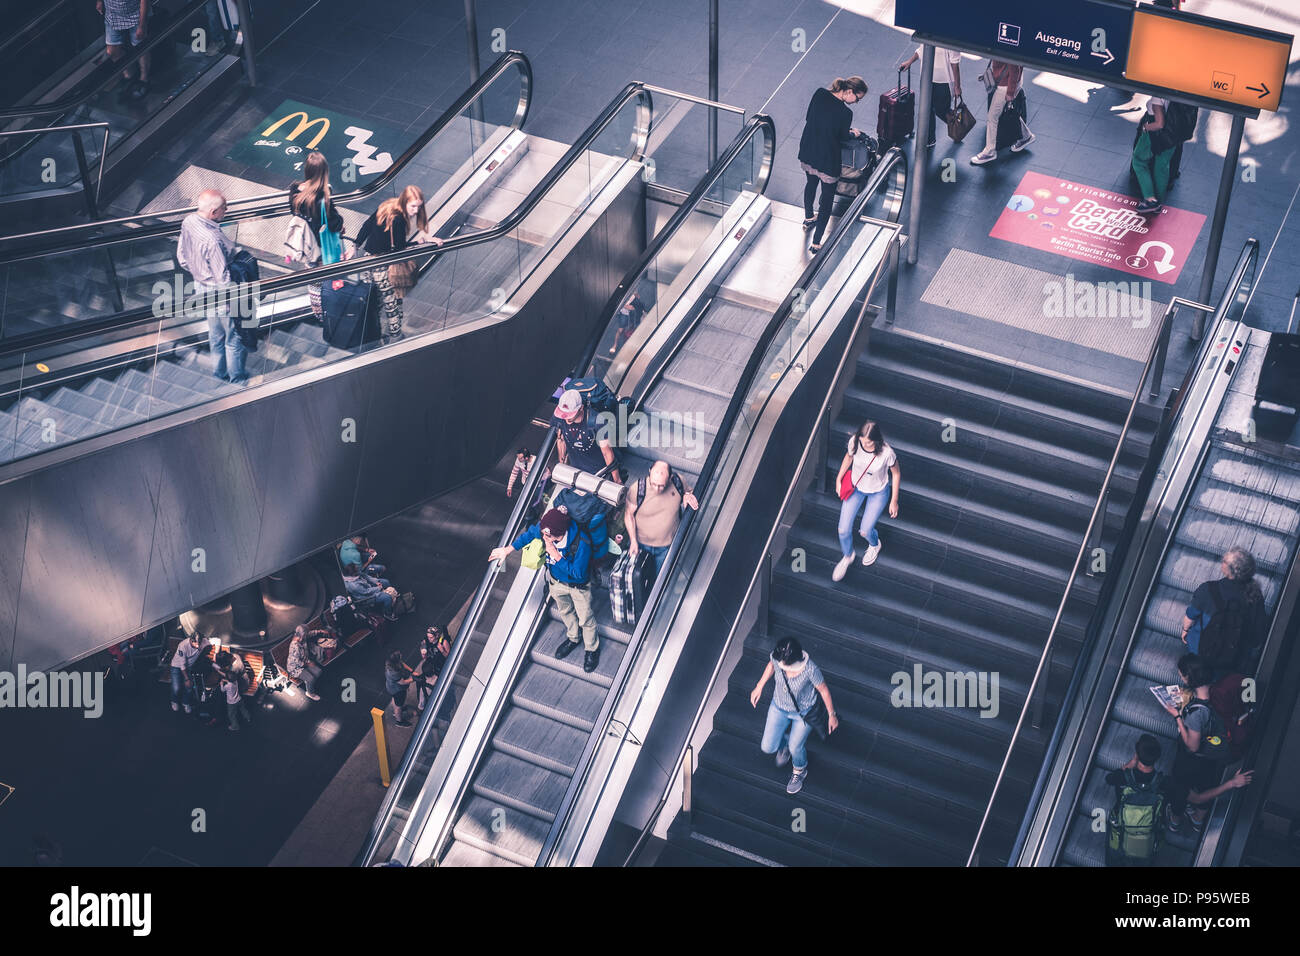 Berlin, Germany - july 2017: Traveling people with luggage on escalator inside main train station (Hauptbahnhof)   in Berlin, Germany - Stock Image